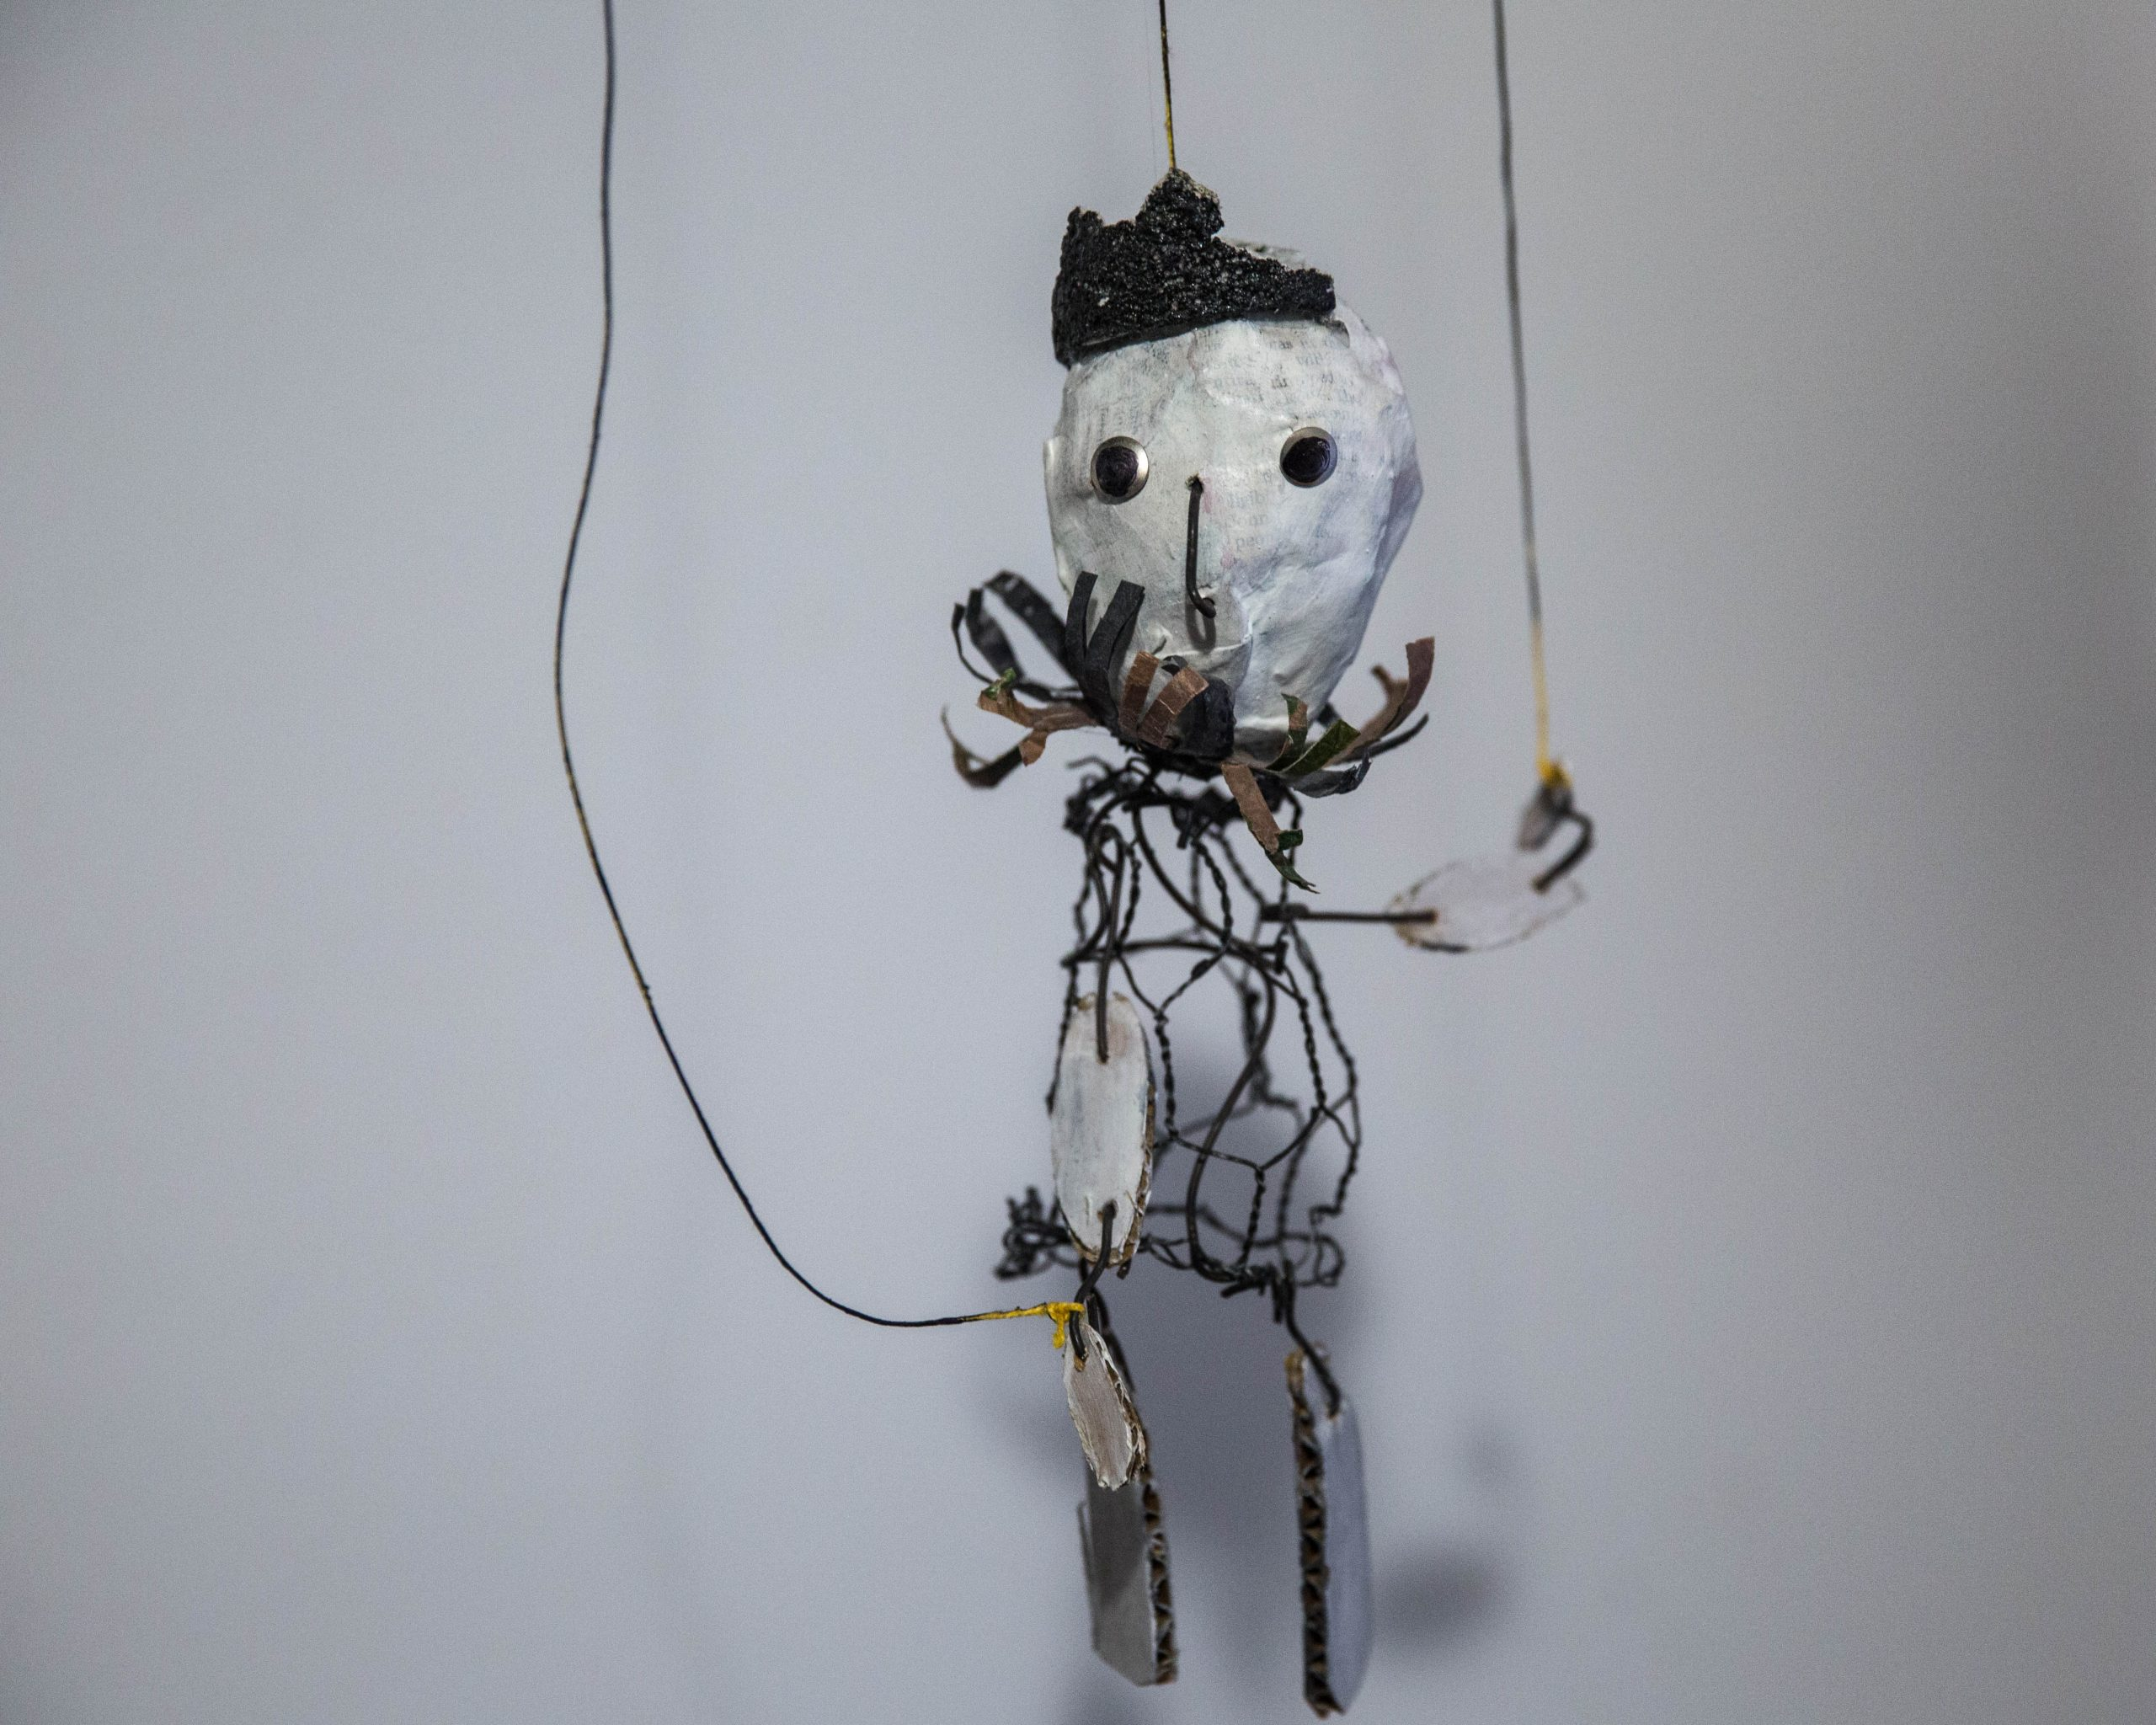 King George, 2014, Paper mache, styrofoam, wire, paint brush, string, cardboard, plastic bags